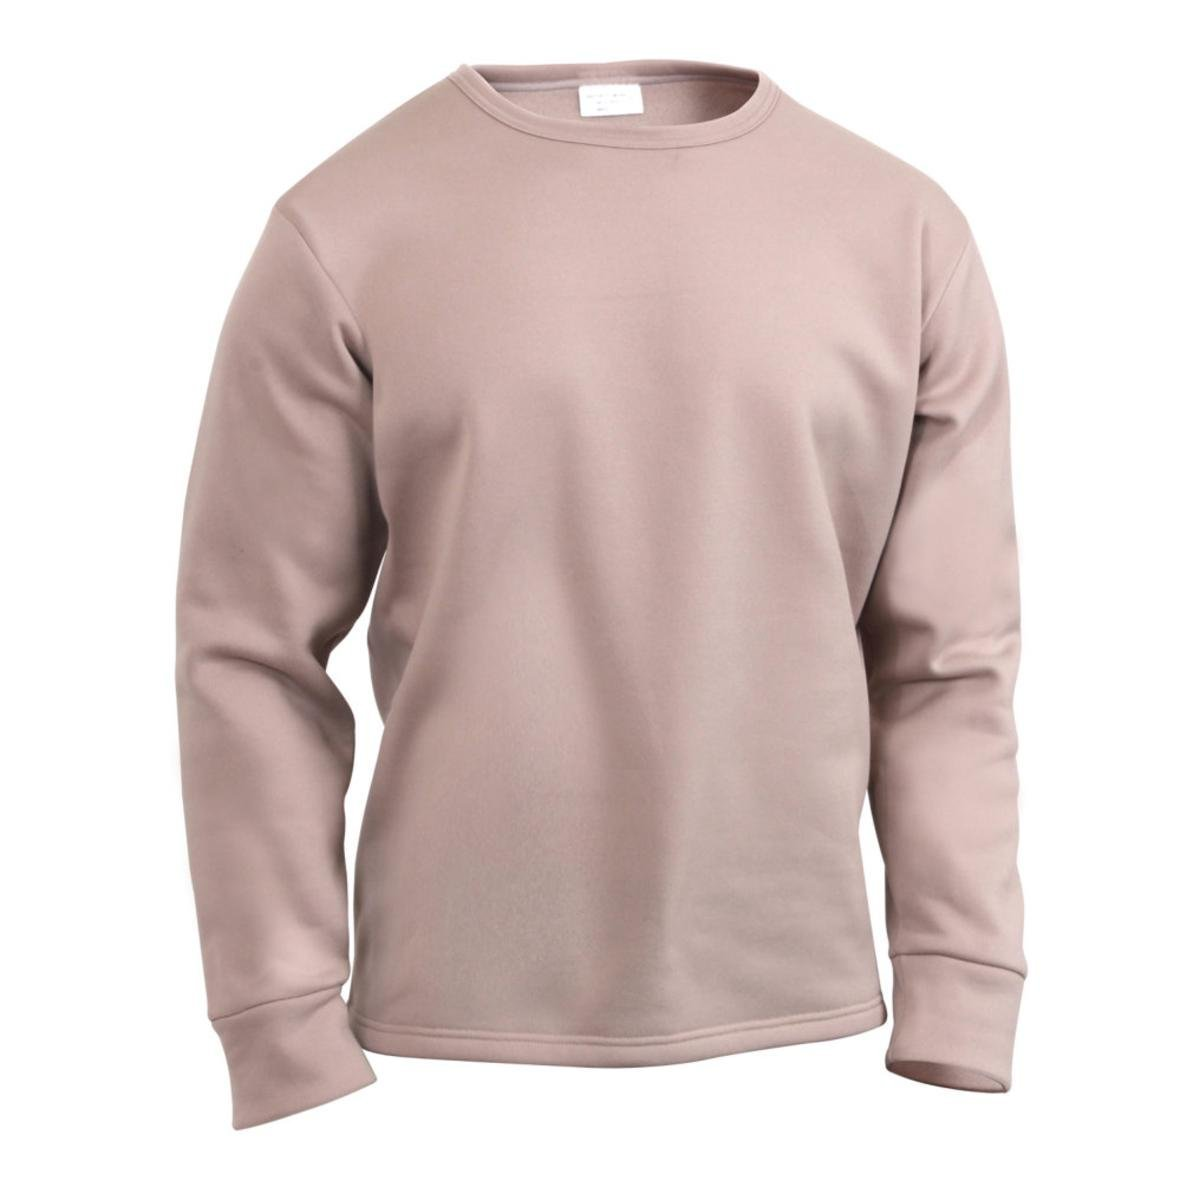 Rothco ECWCS Poly Crew Neck Top - Brown, 2X-Large - image 1 of 1